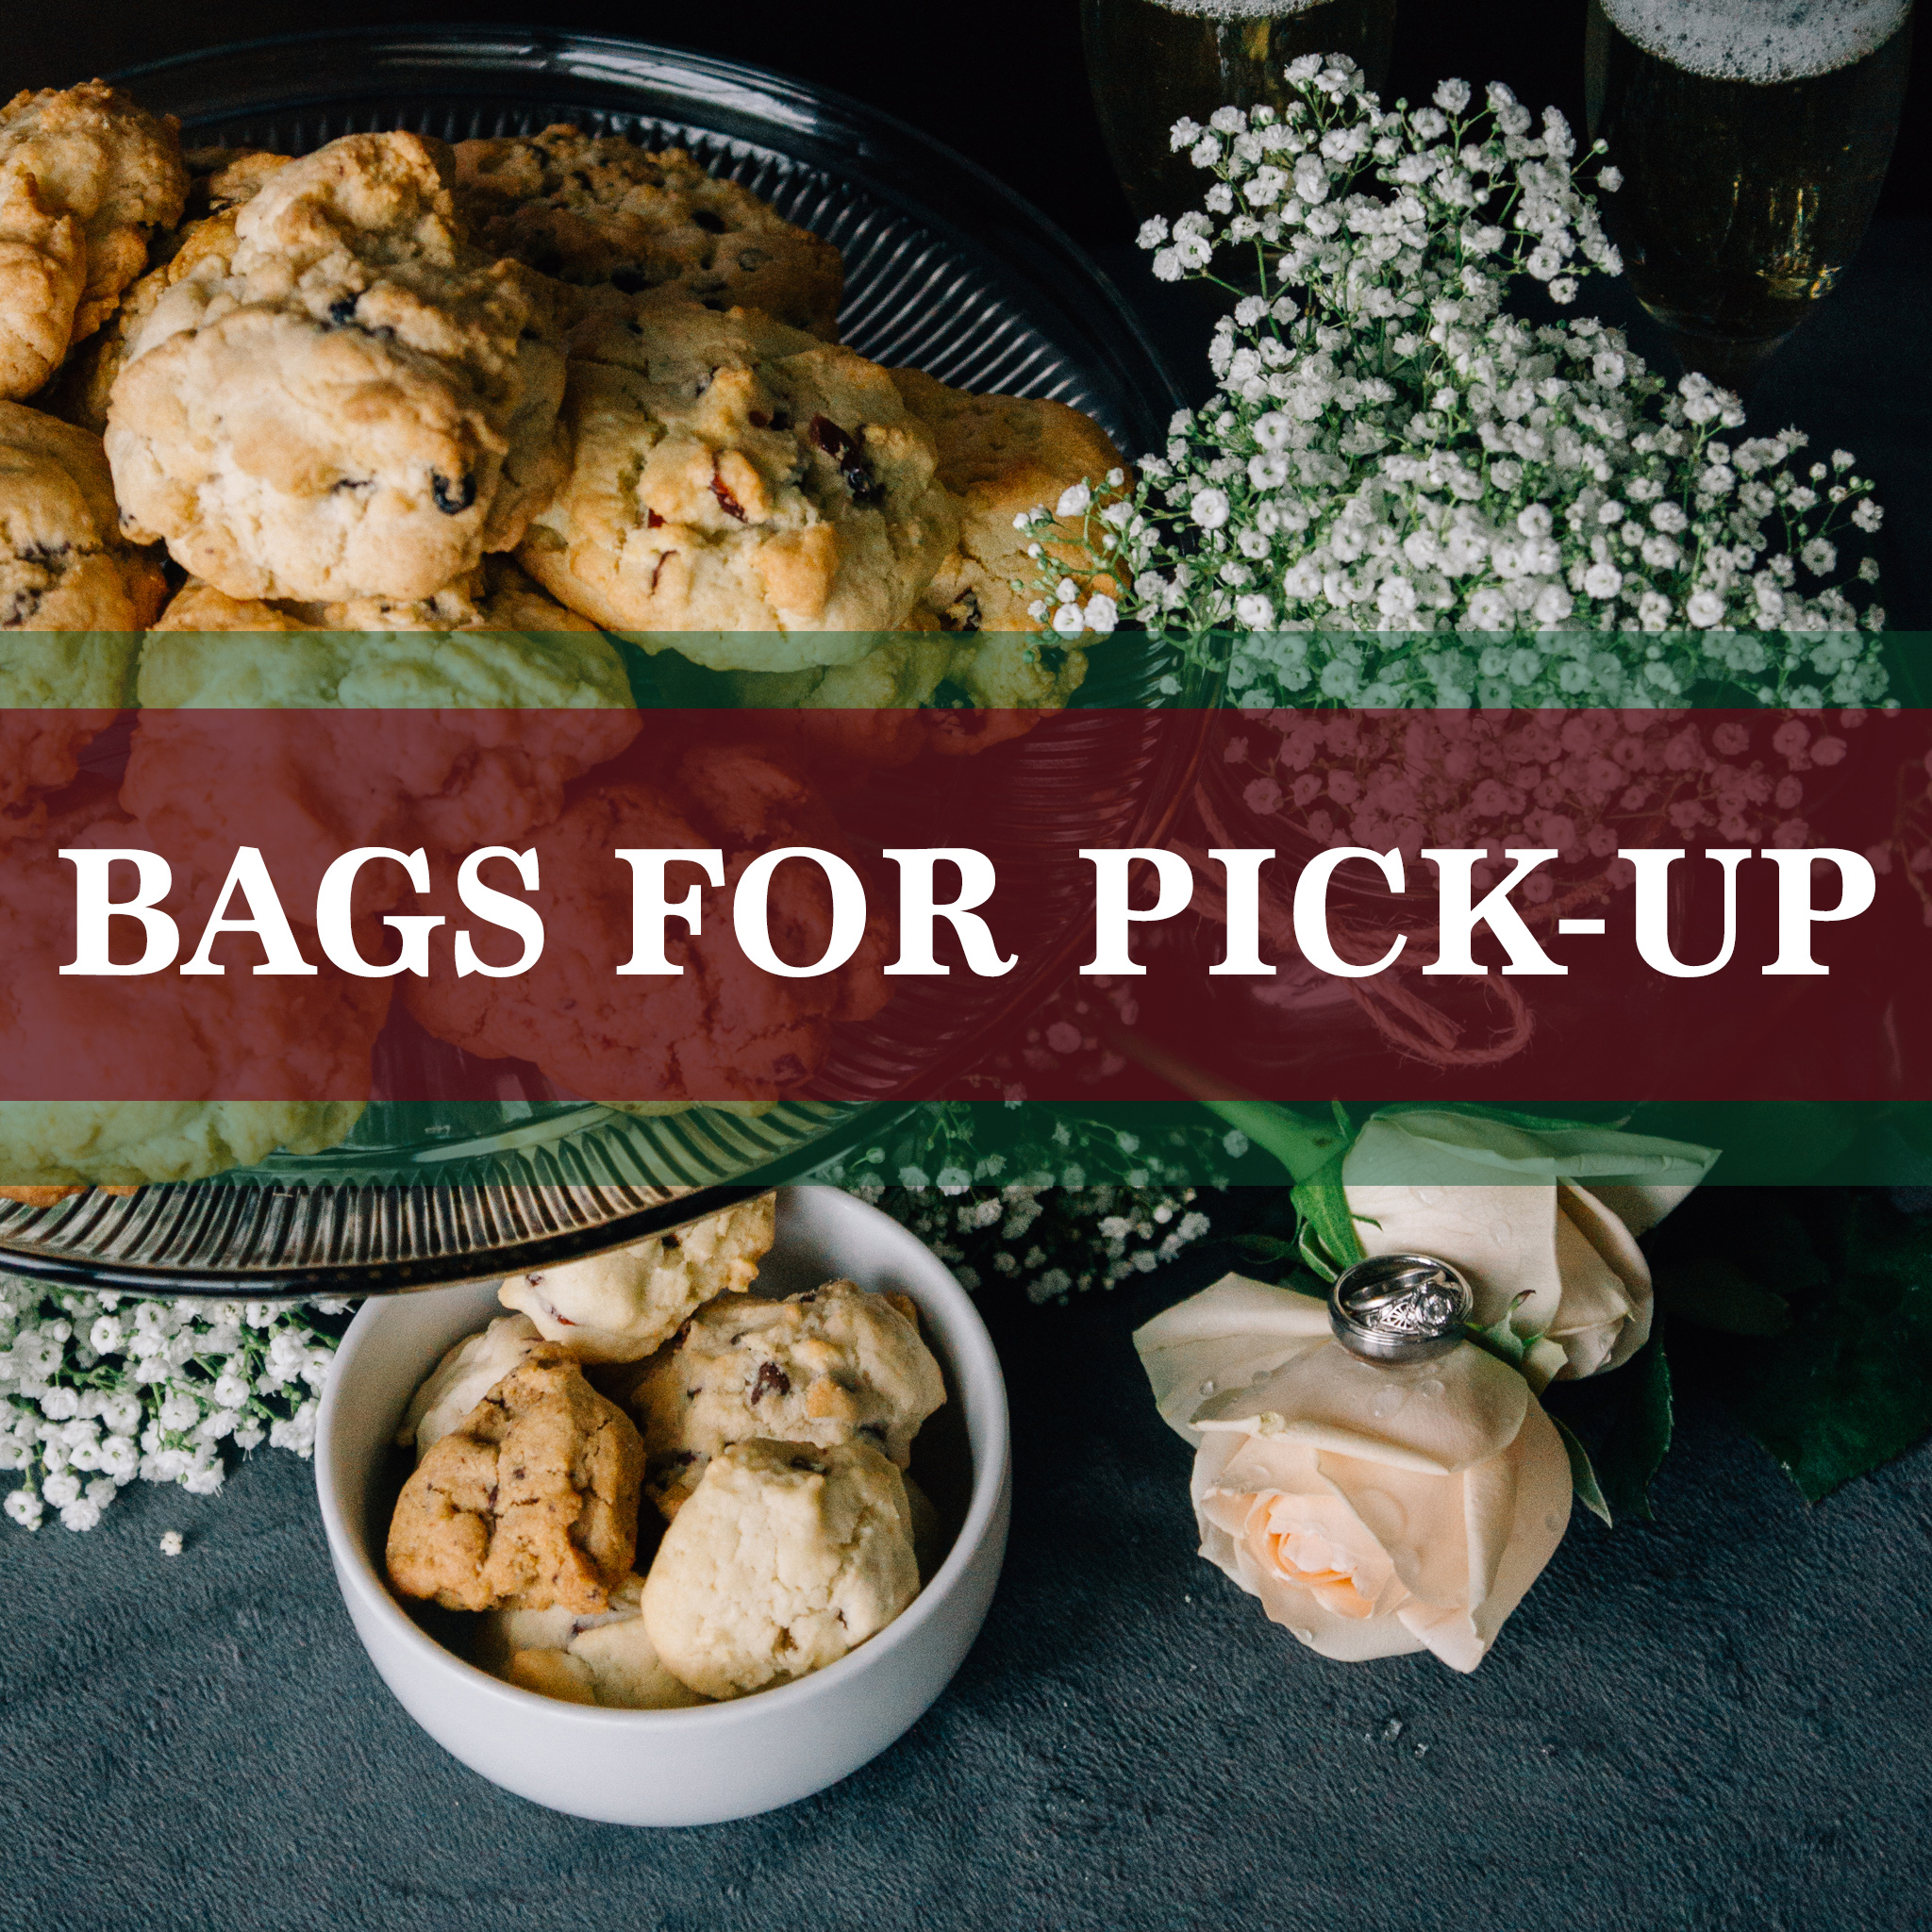 Bag of Scones for Pickup